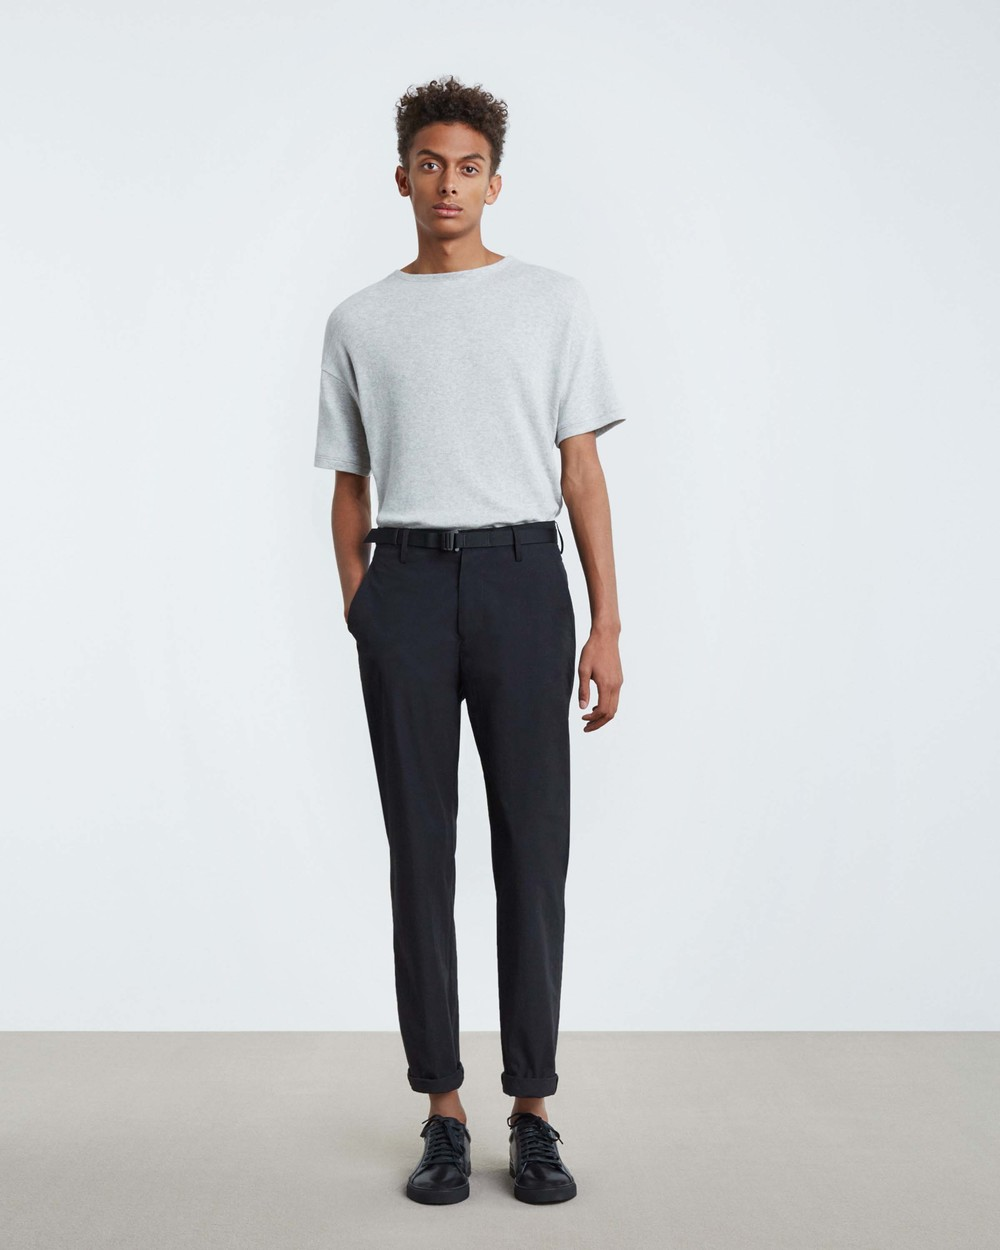 OuurMedia_OuurCollectionSS16_26.jpg